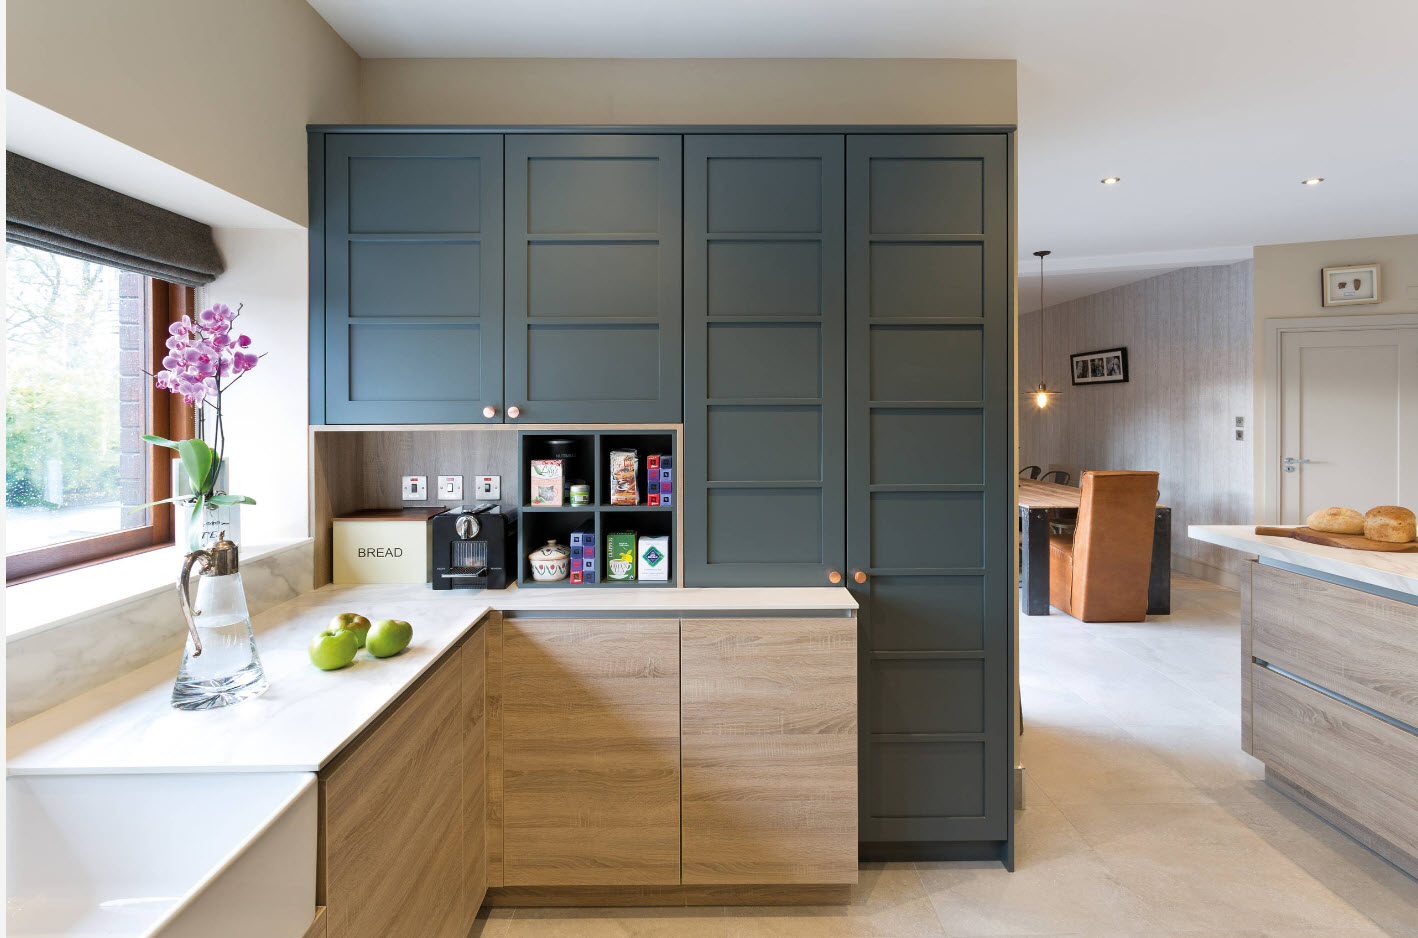 Dark plasticine furniture surfaces and laminated bottom tier storage in the modern styled kitchen